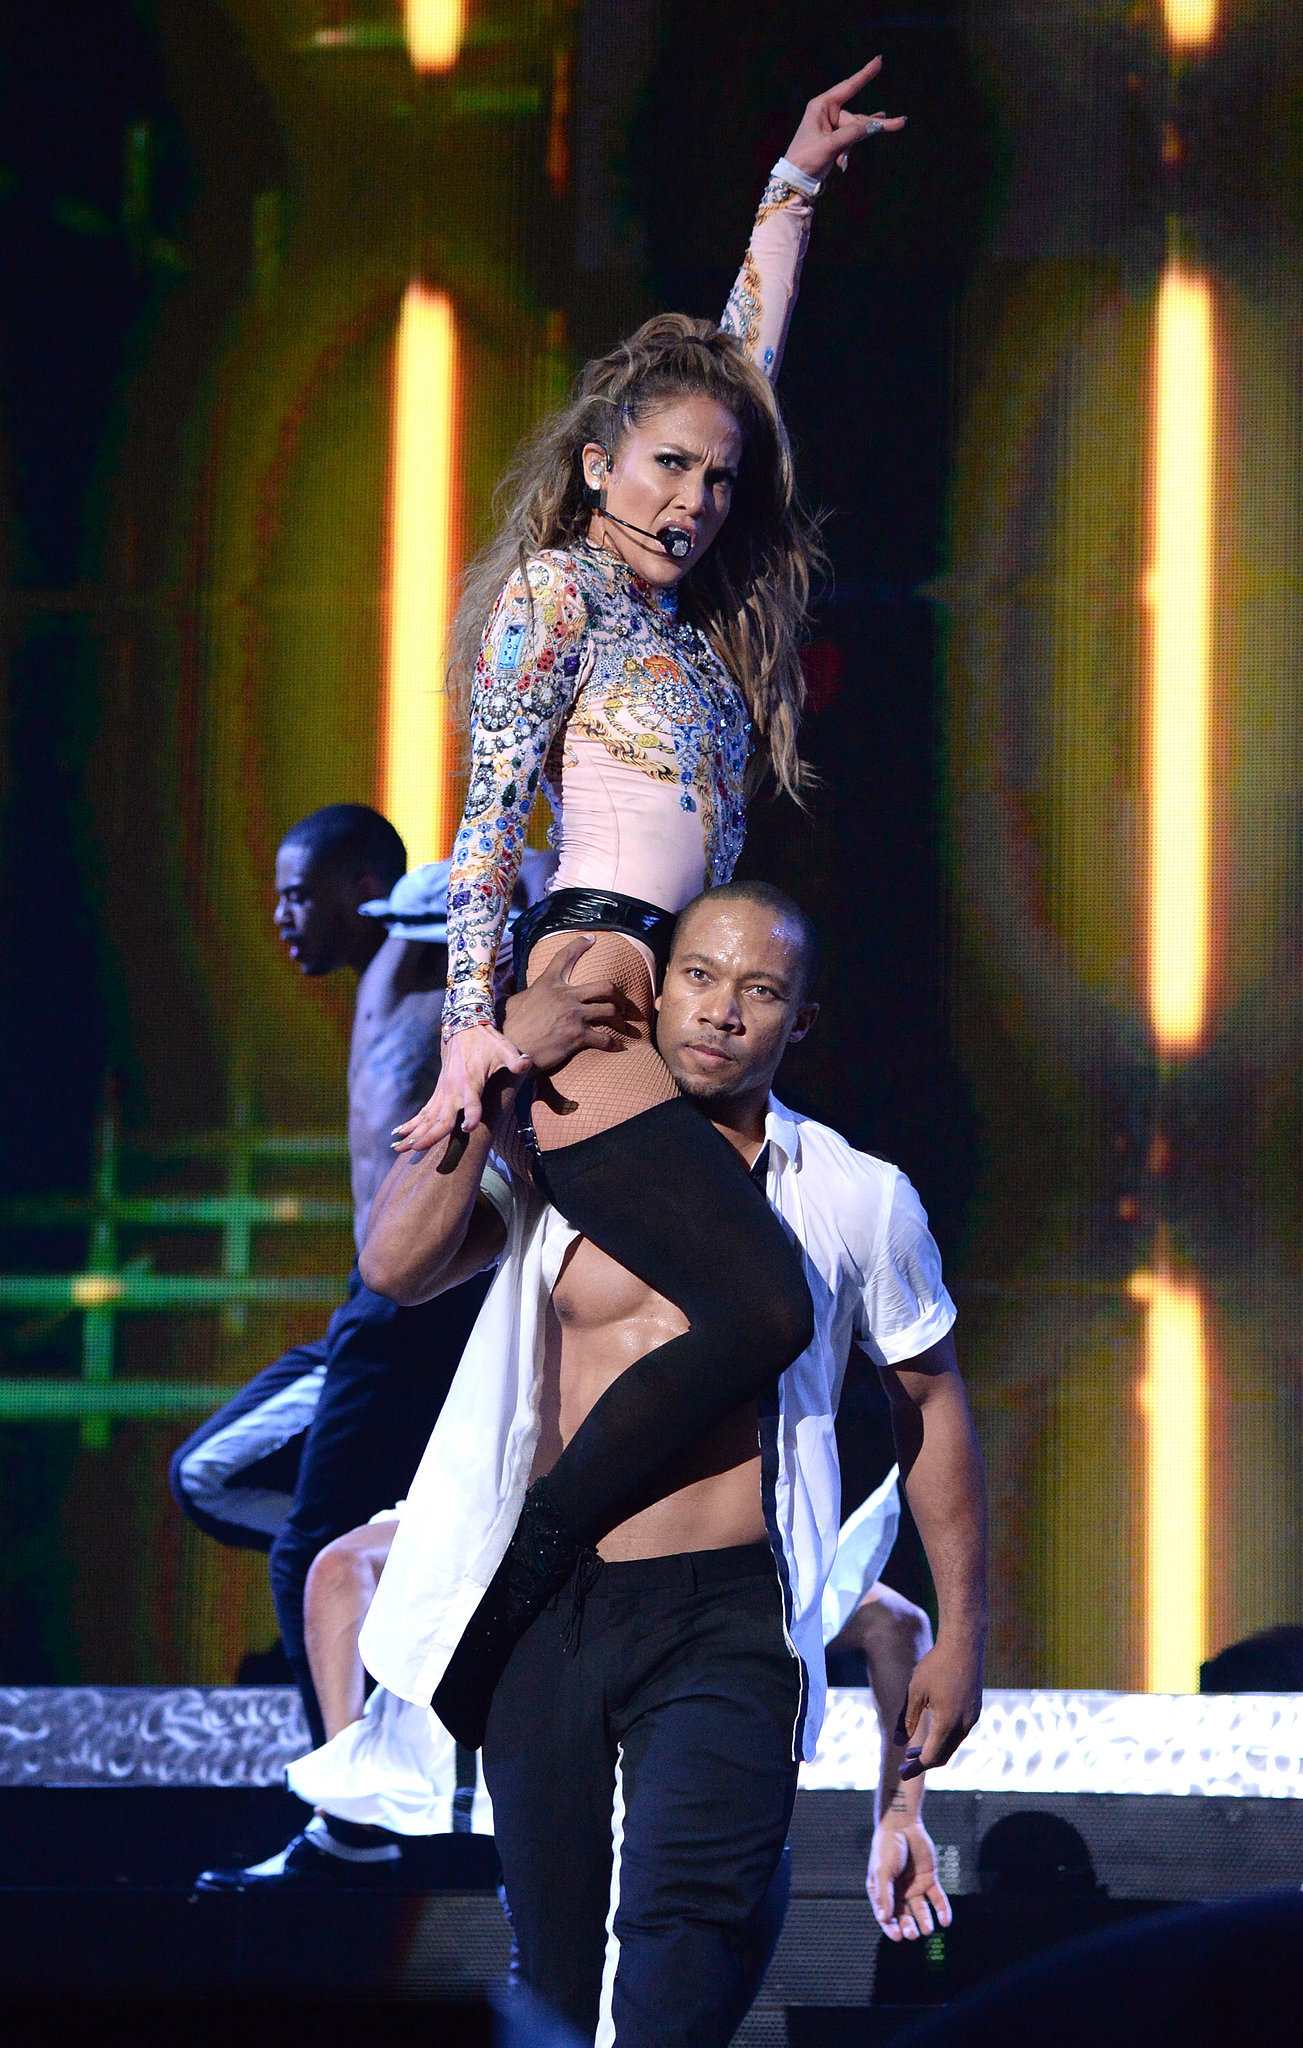 Jennifer Lopez's Hometown Show Gives Miley a Run For Her Money